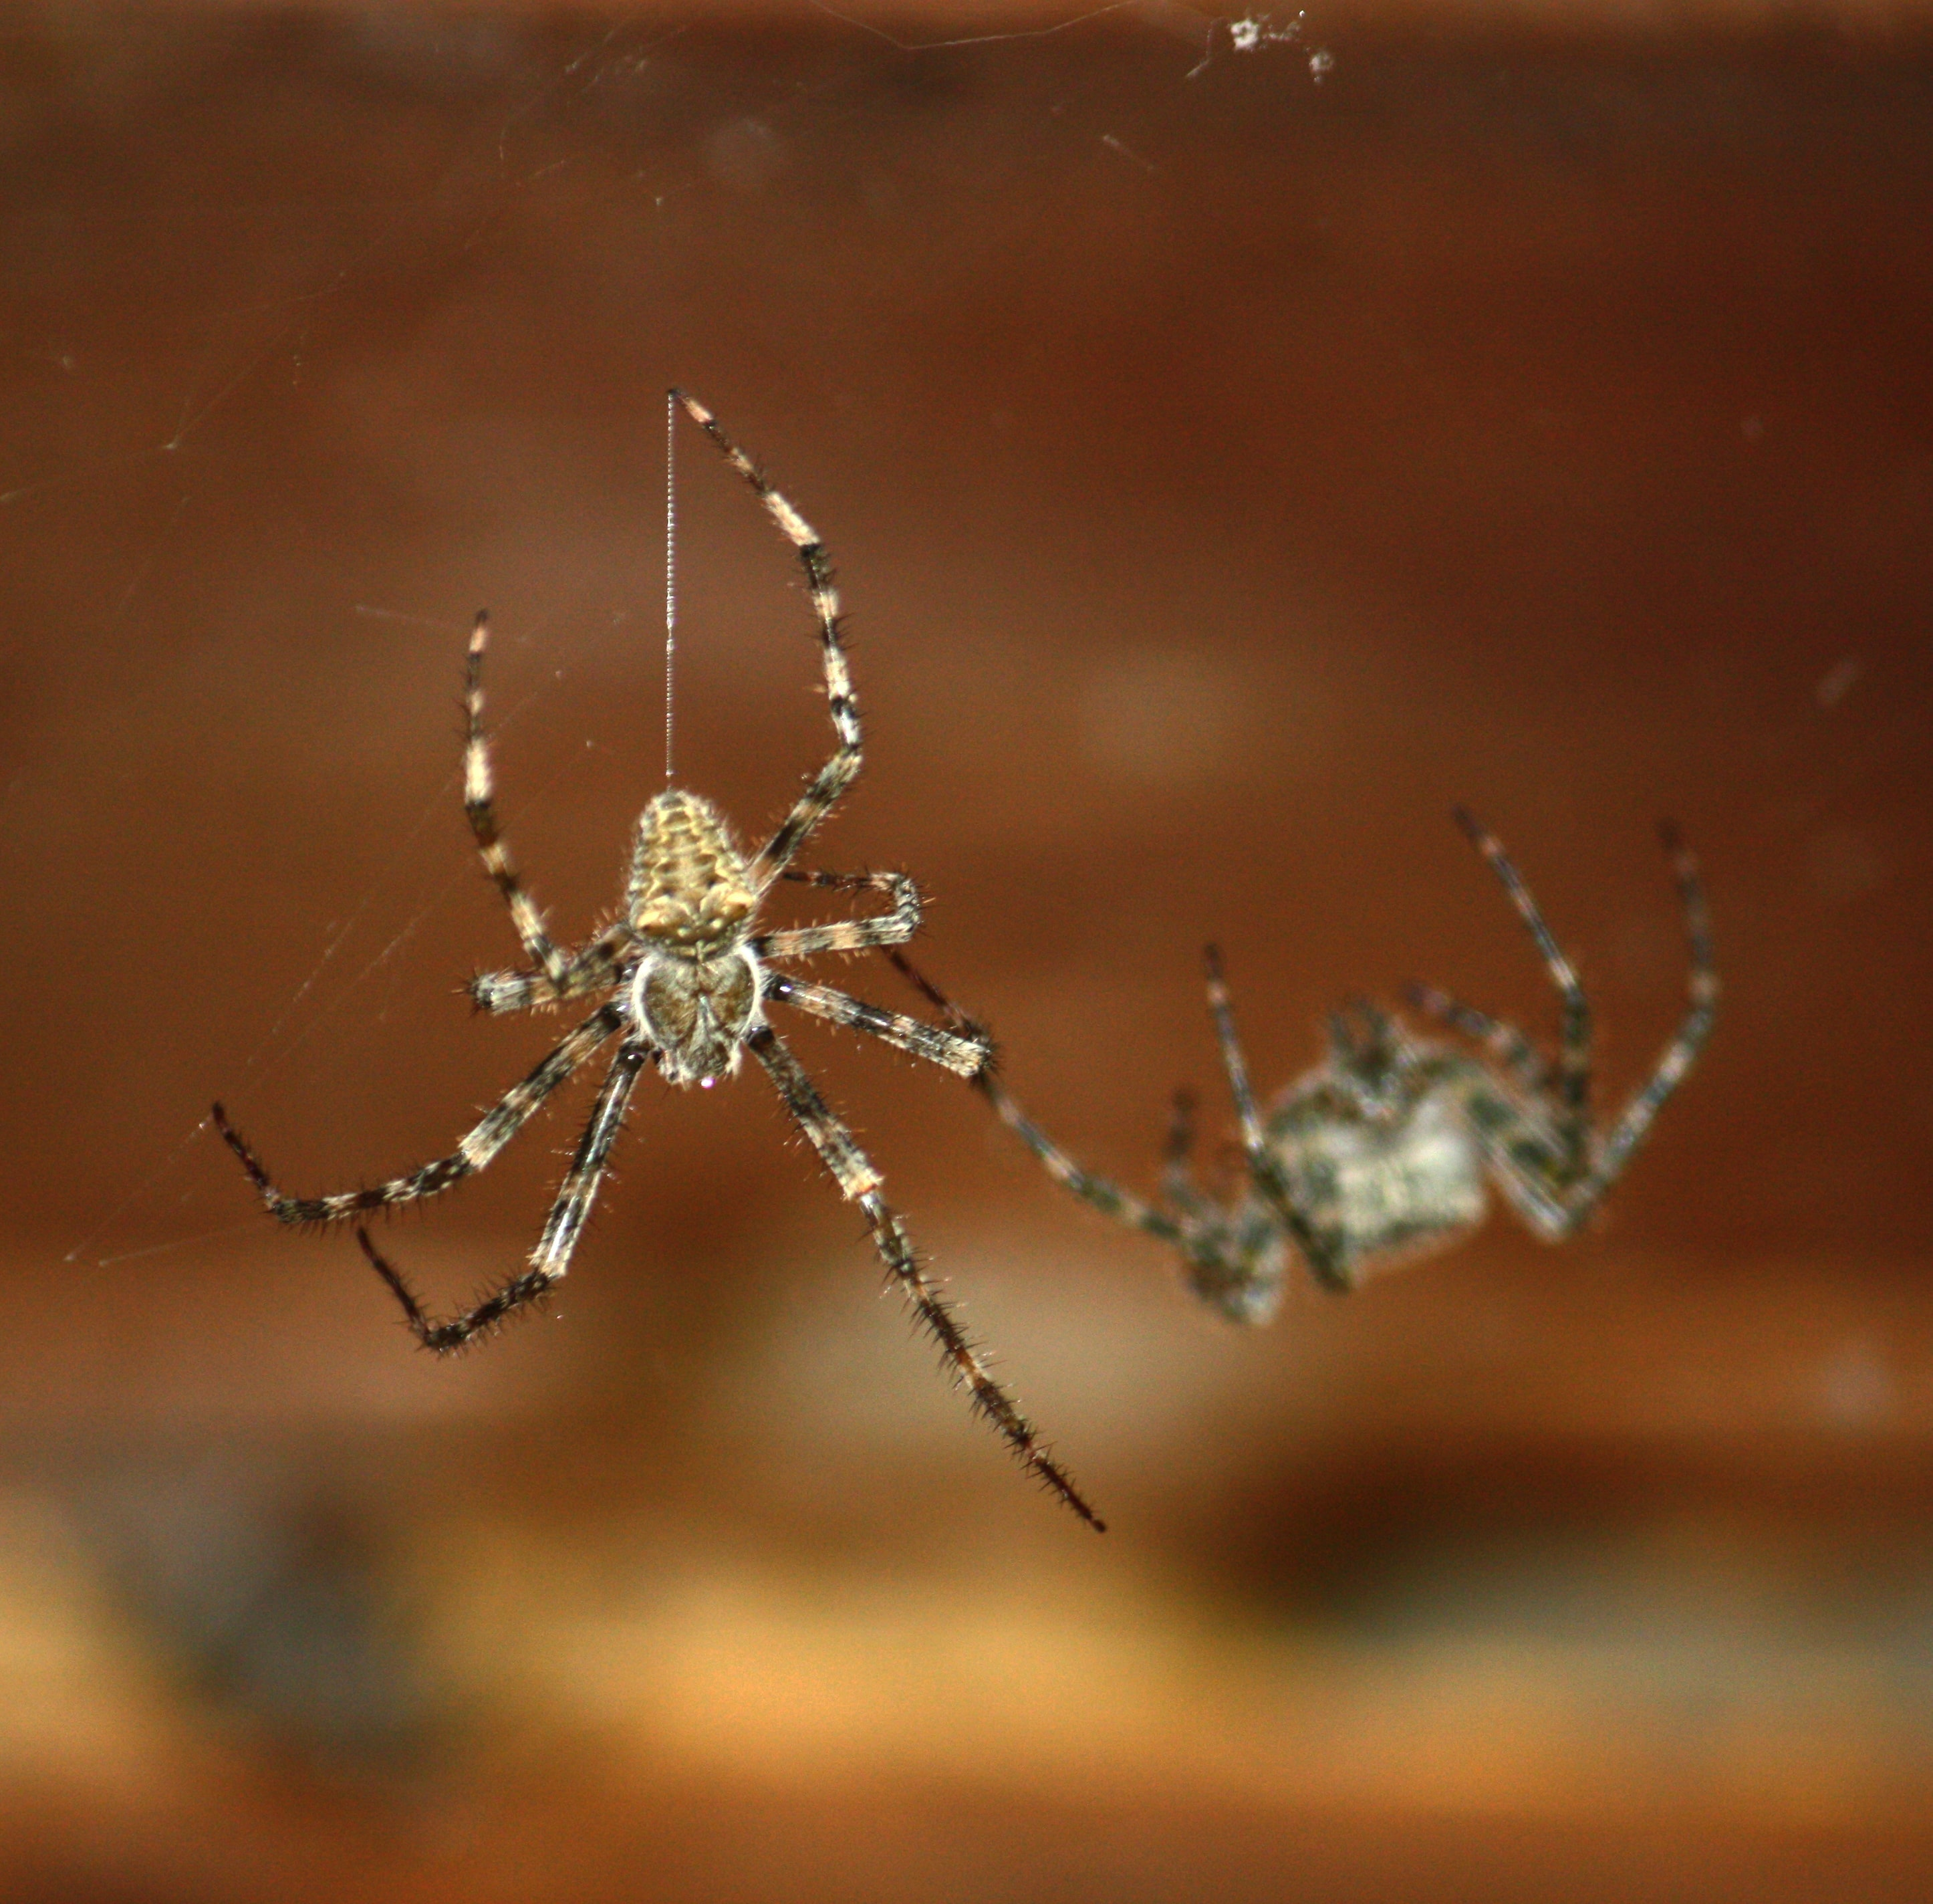 Picture of Araneus cavaticus (Barn Orb-weaver Spider) - Male,Female - Dorsal